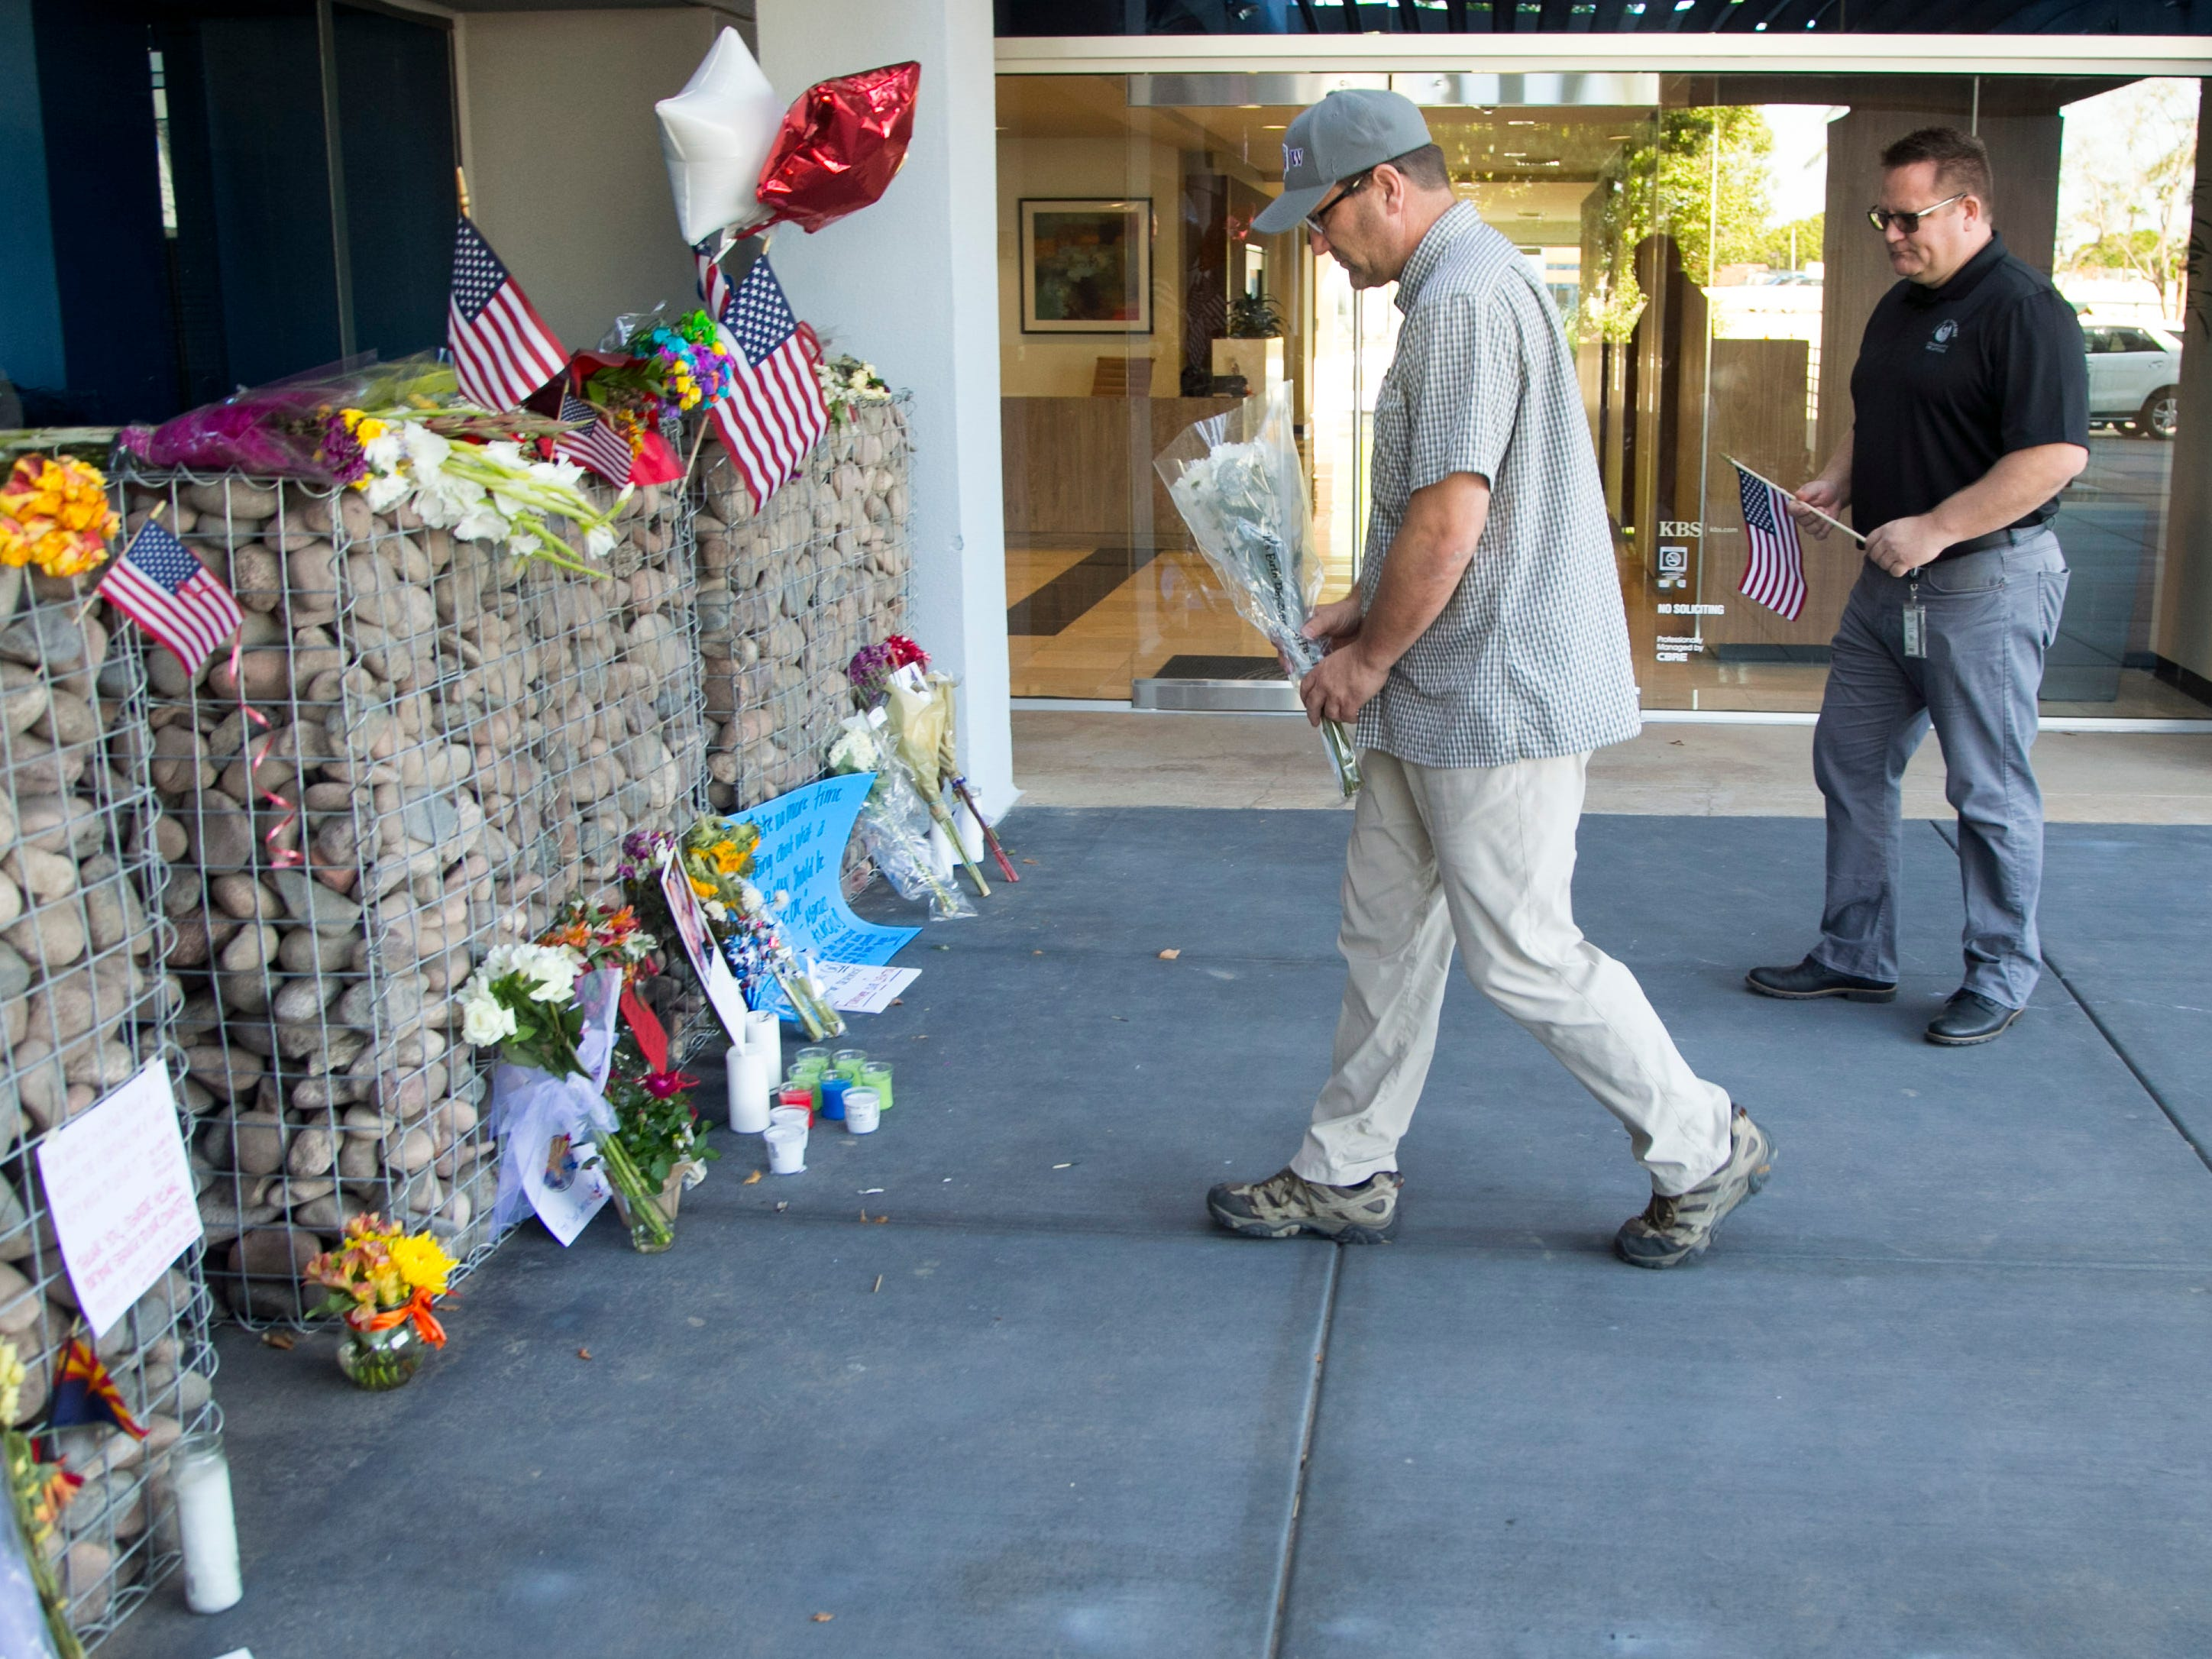 James Olsen (center) of Columbia, S.C., and his brother, Ted Olsen of Phoenix, place flowers and an American flag at a memorial for Sen. John McCain at McCain's office in Phoenix on Aug. 27, 2018.